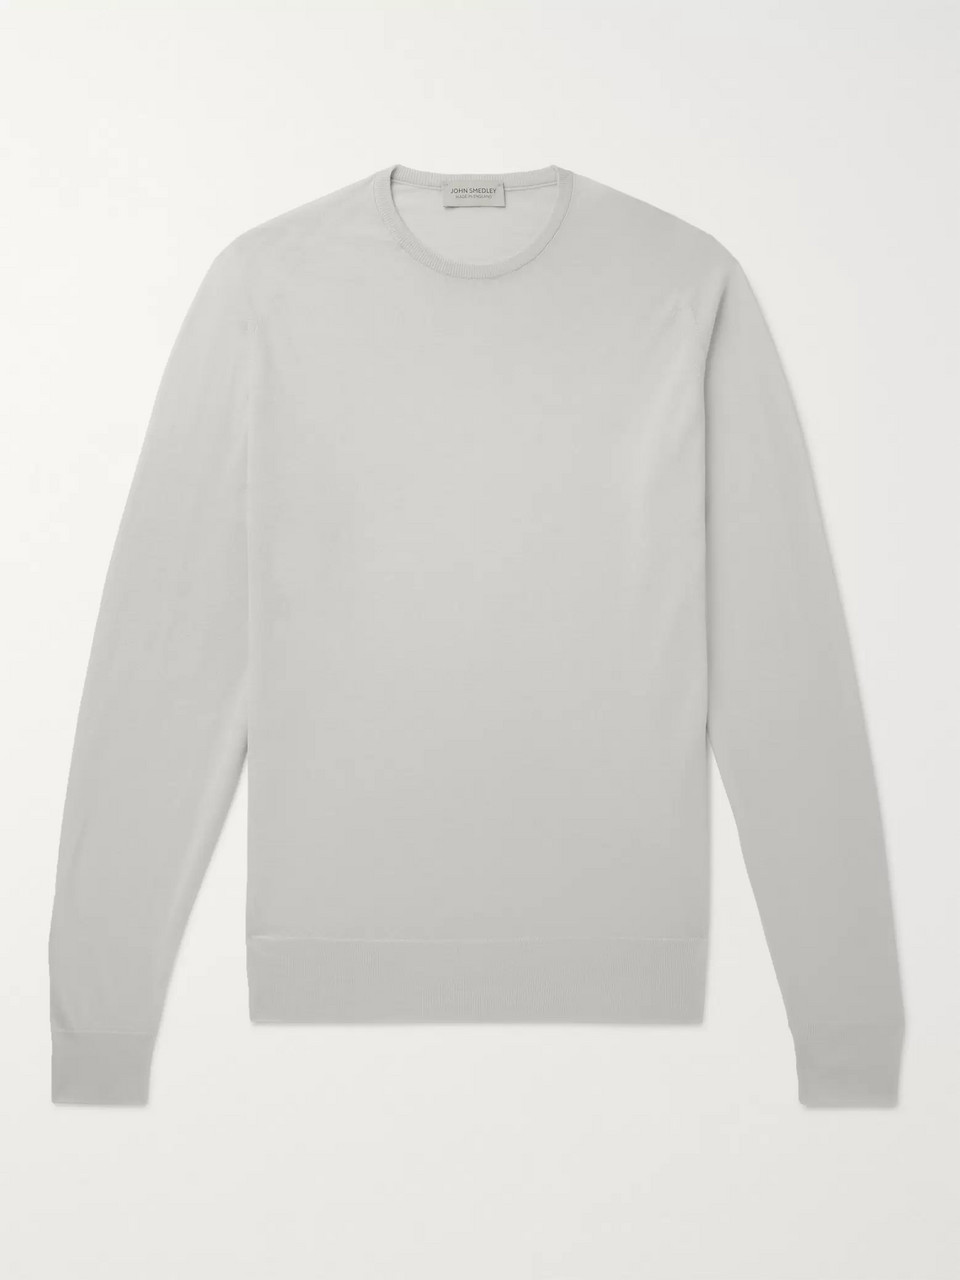 John Smedley Slim-Fit Merino Wool Sweater